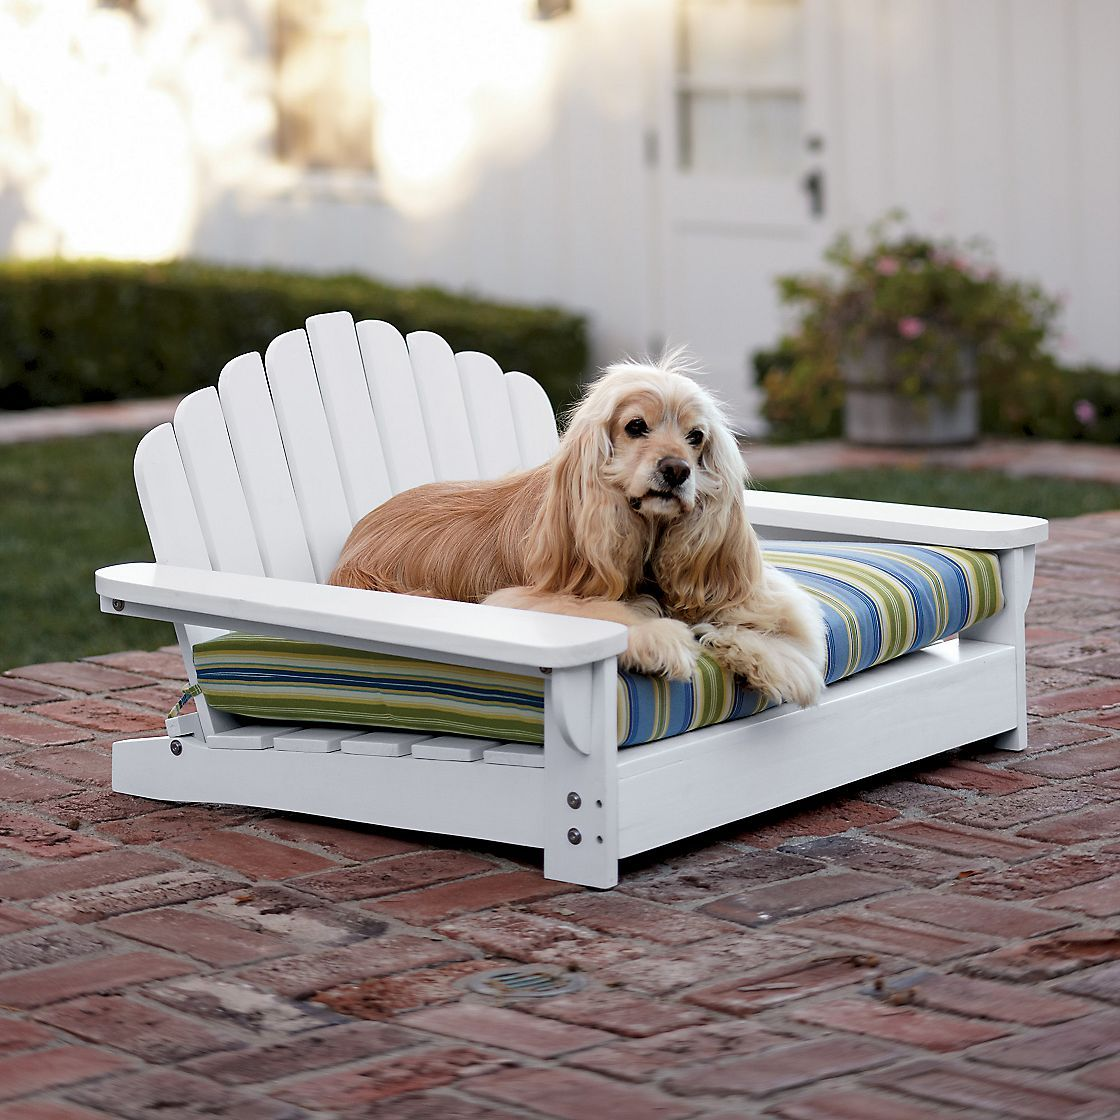 how to keep dog off furniture when gone